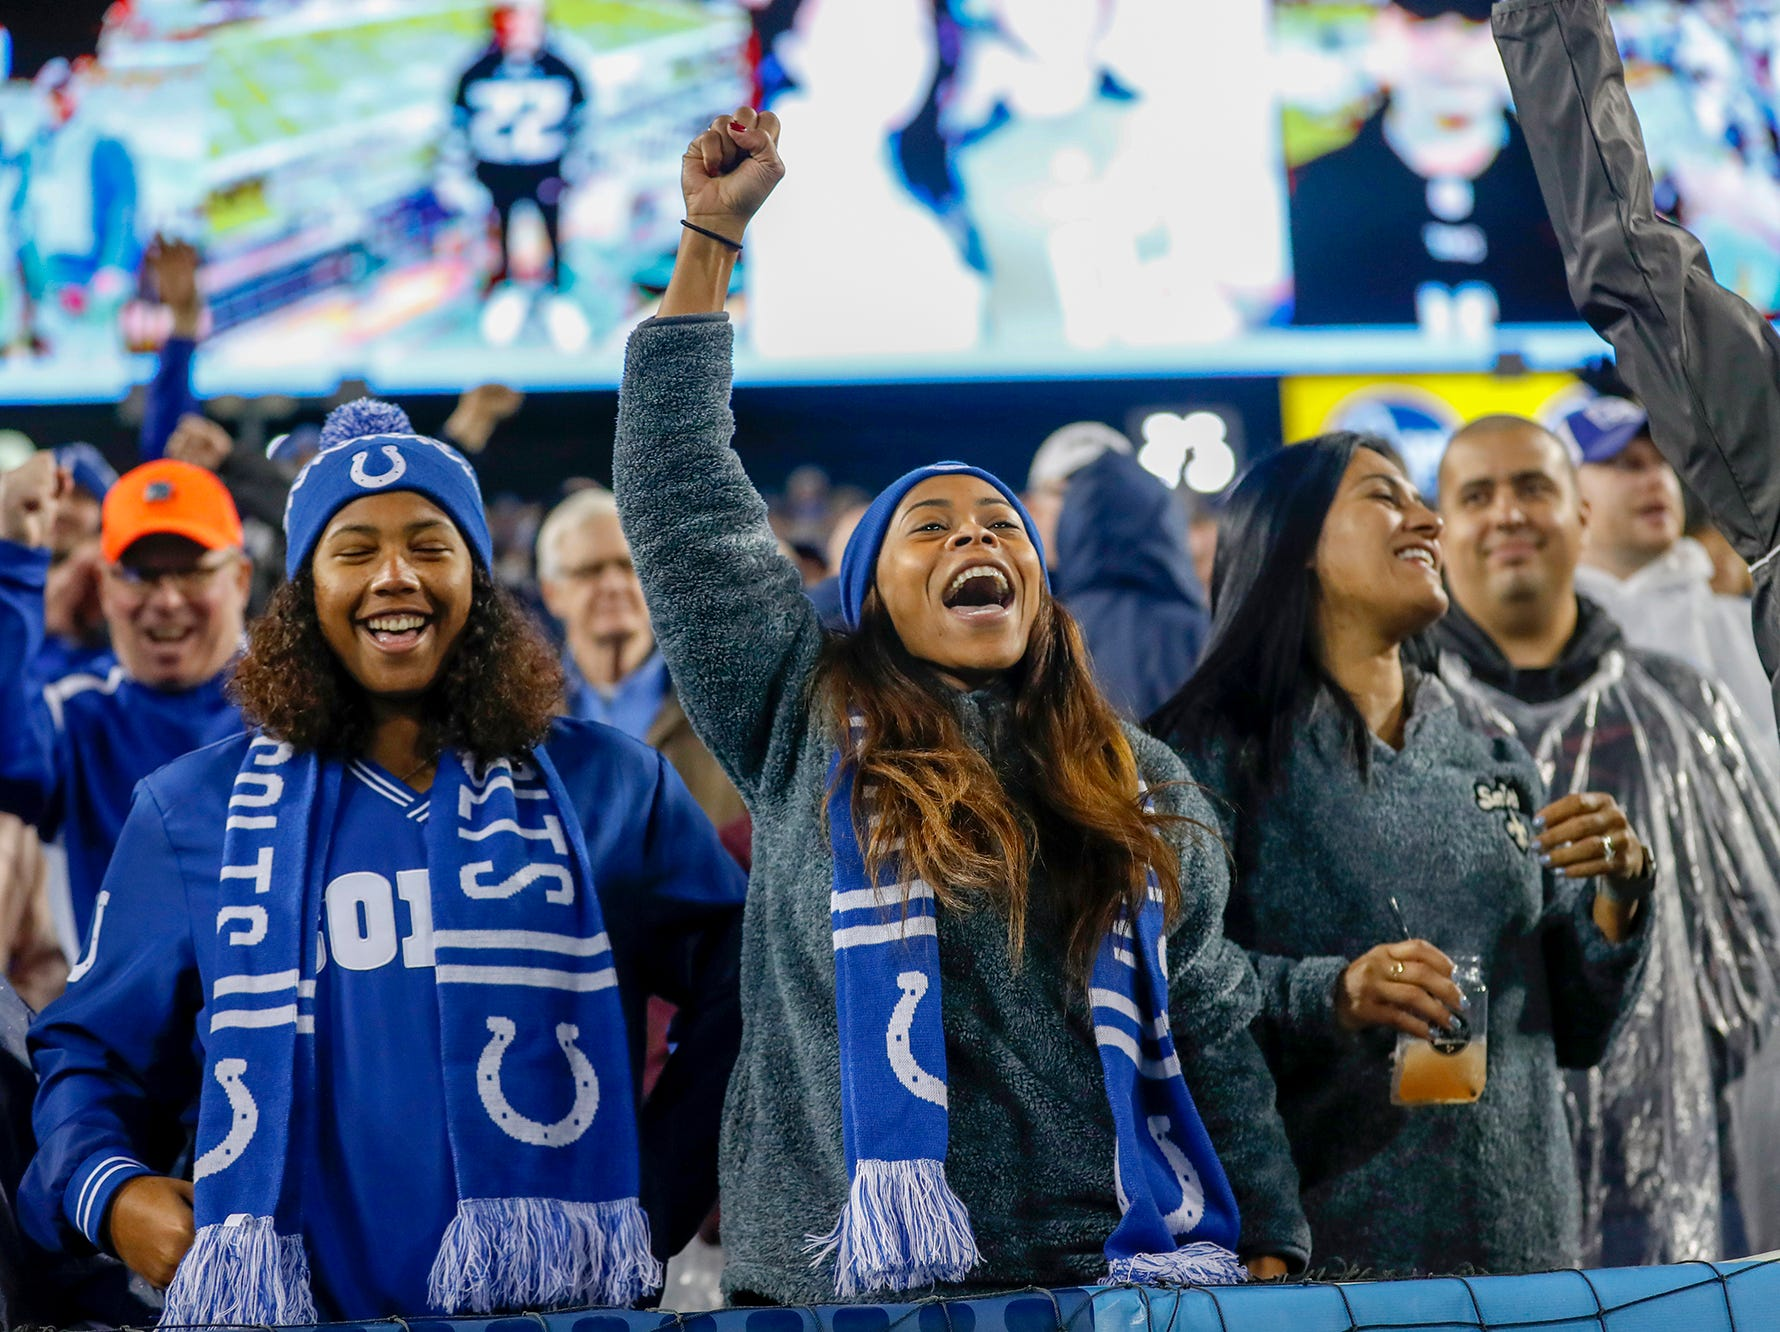 Indianapolis Colts fans cheer as the seconds tick off the clock in the game against the Tennessee Titans at Nissan Stadium in Nashville, Tenn., on Sunday, Dec. 23, 2018.